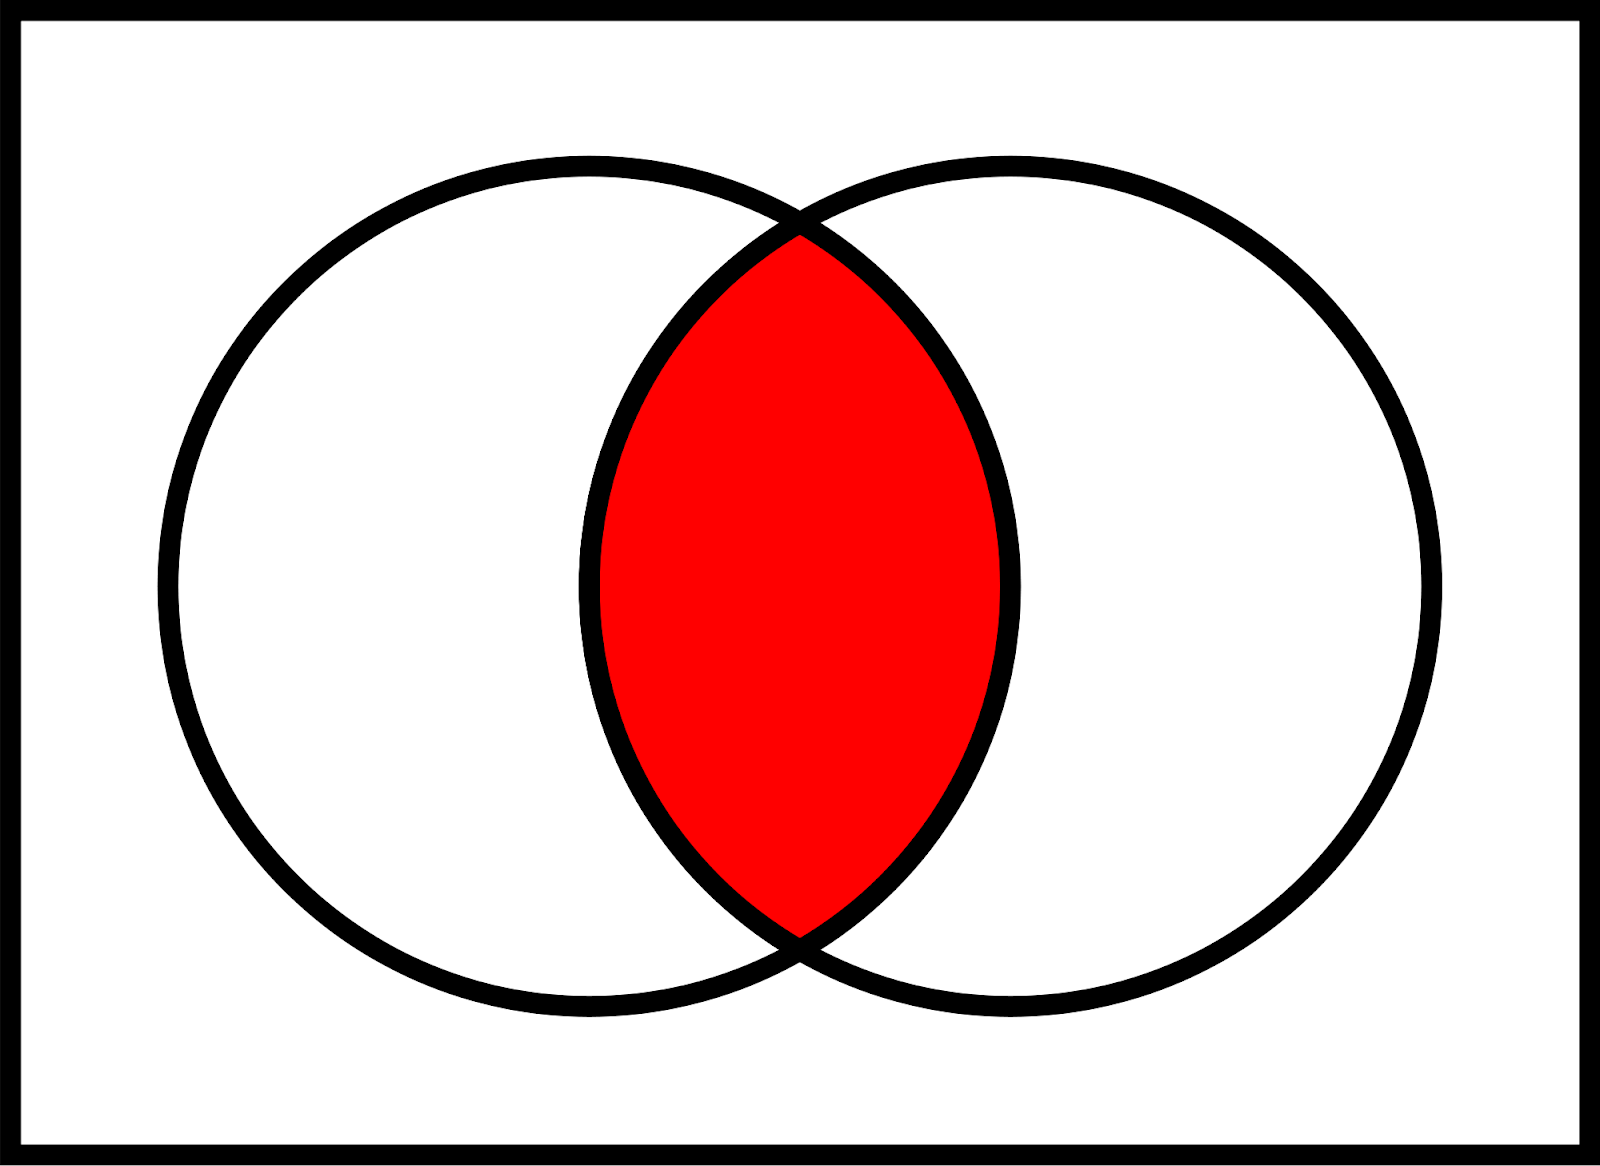 Venn diagram with the intersection colored red